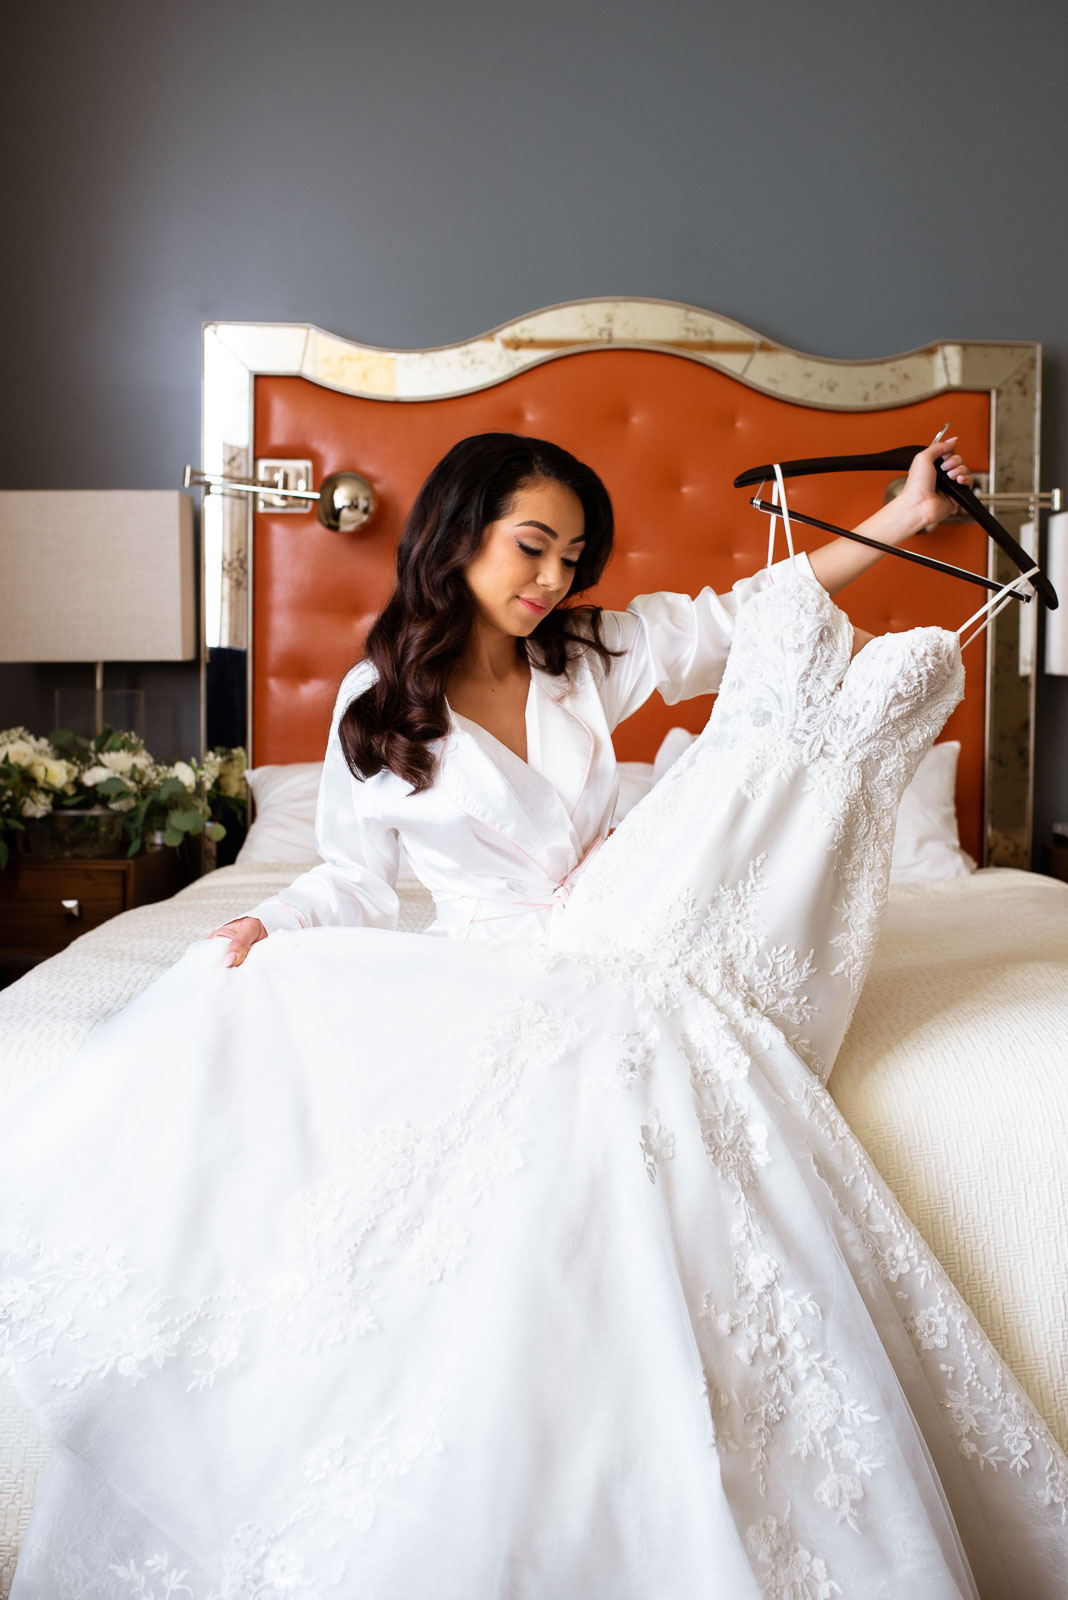 Bride holding her wedding dress, getting ready photos | Josie V Photography